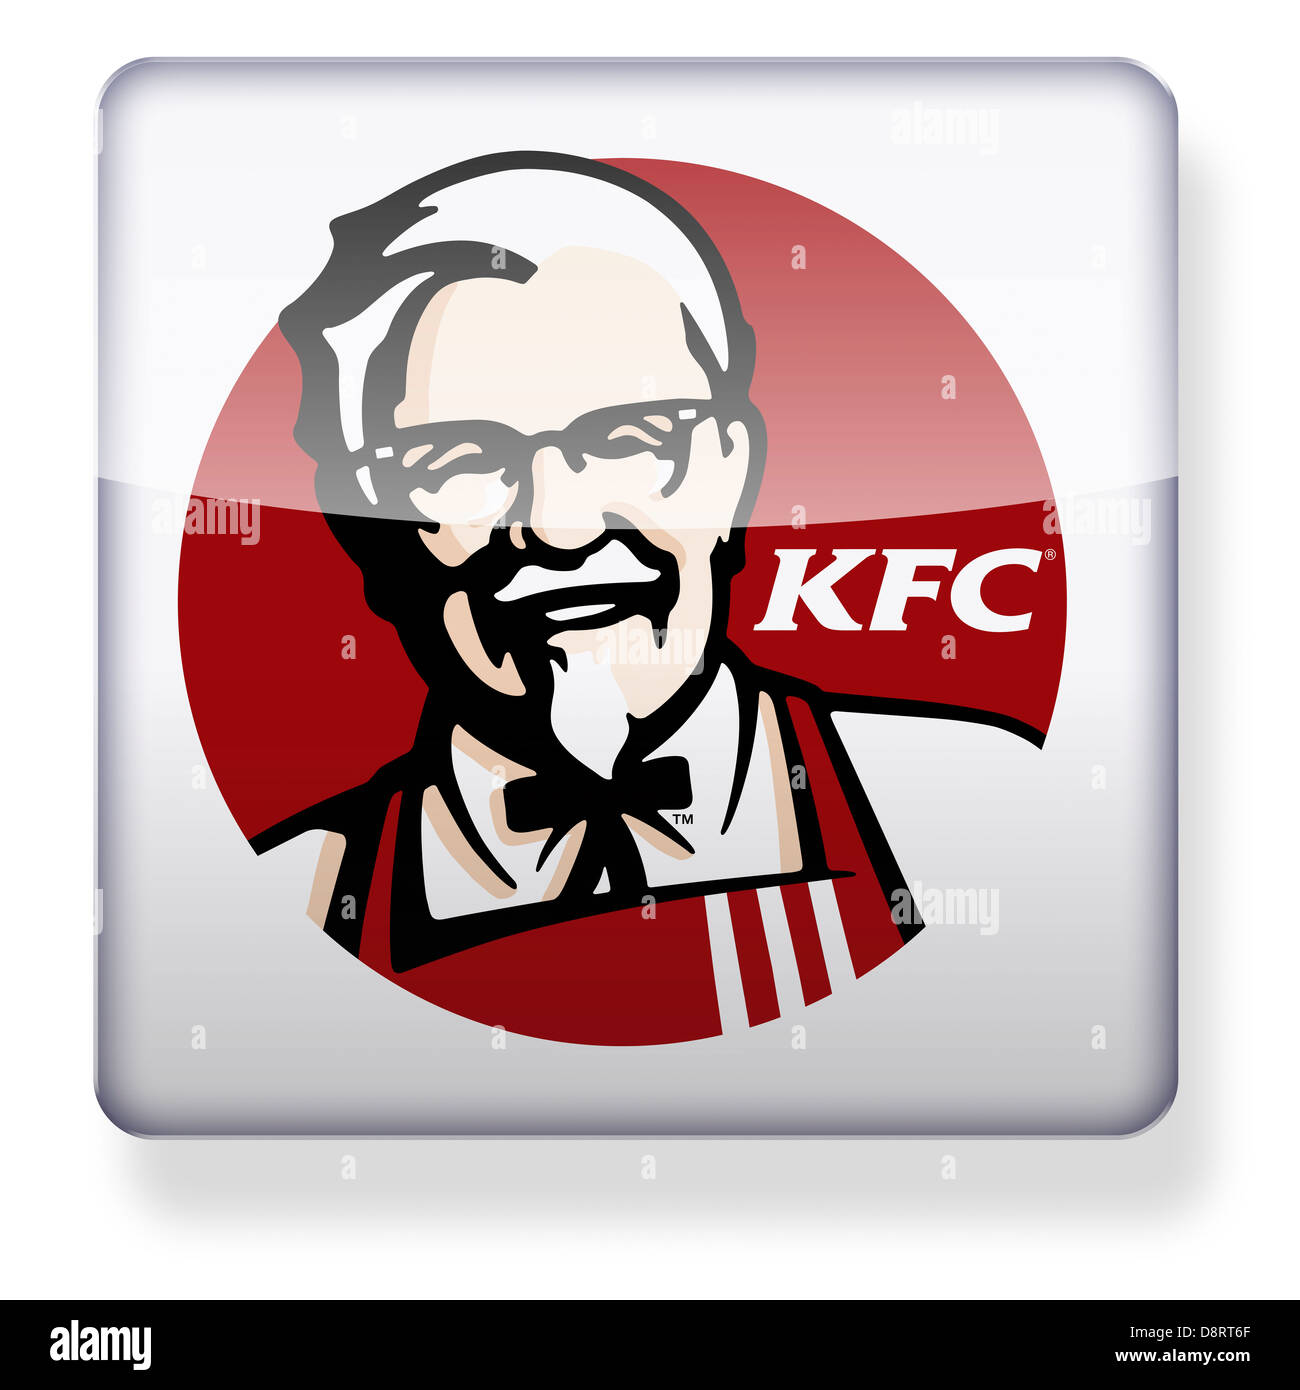 KFC logo as an app icon. Clipping path included. - Stock Image